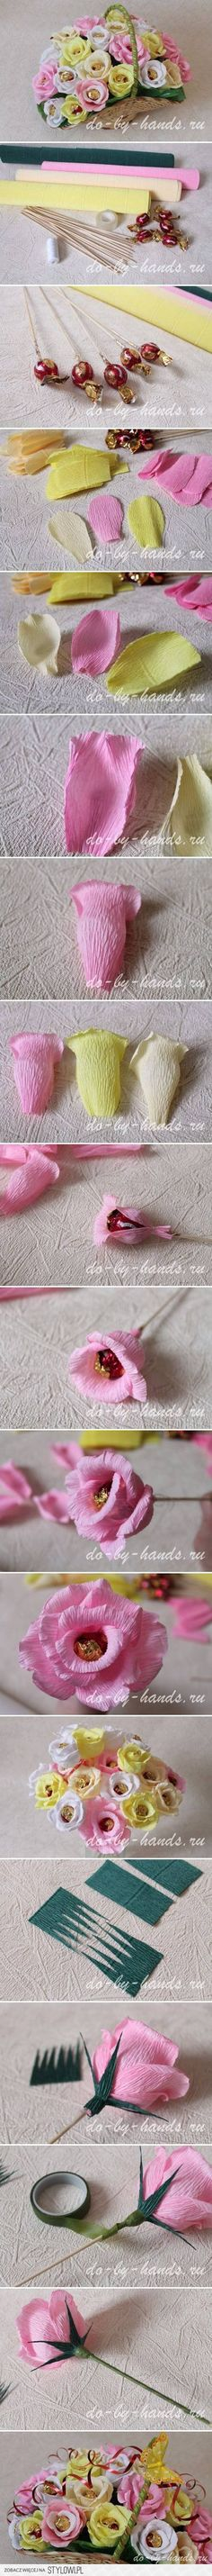 DIY Paper Roses with Candy DIY Projects | UsefulDIY.com